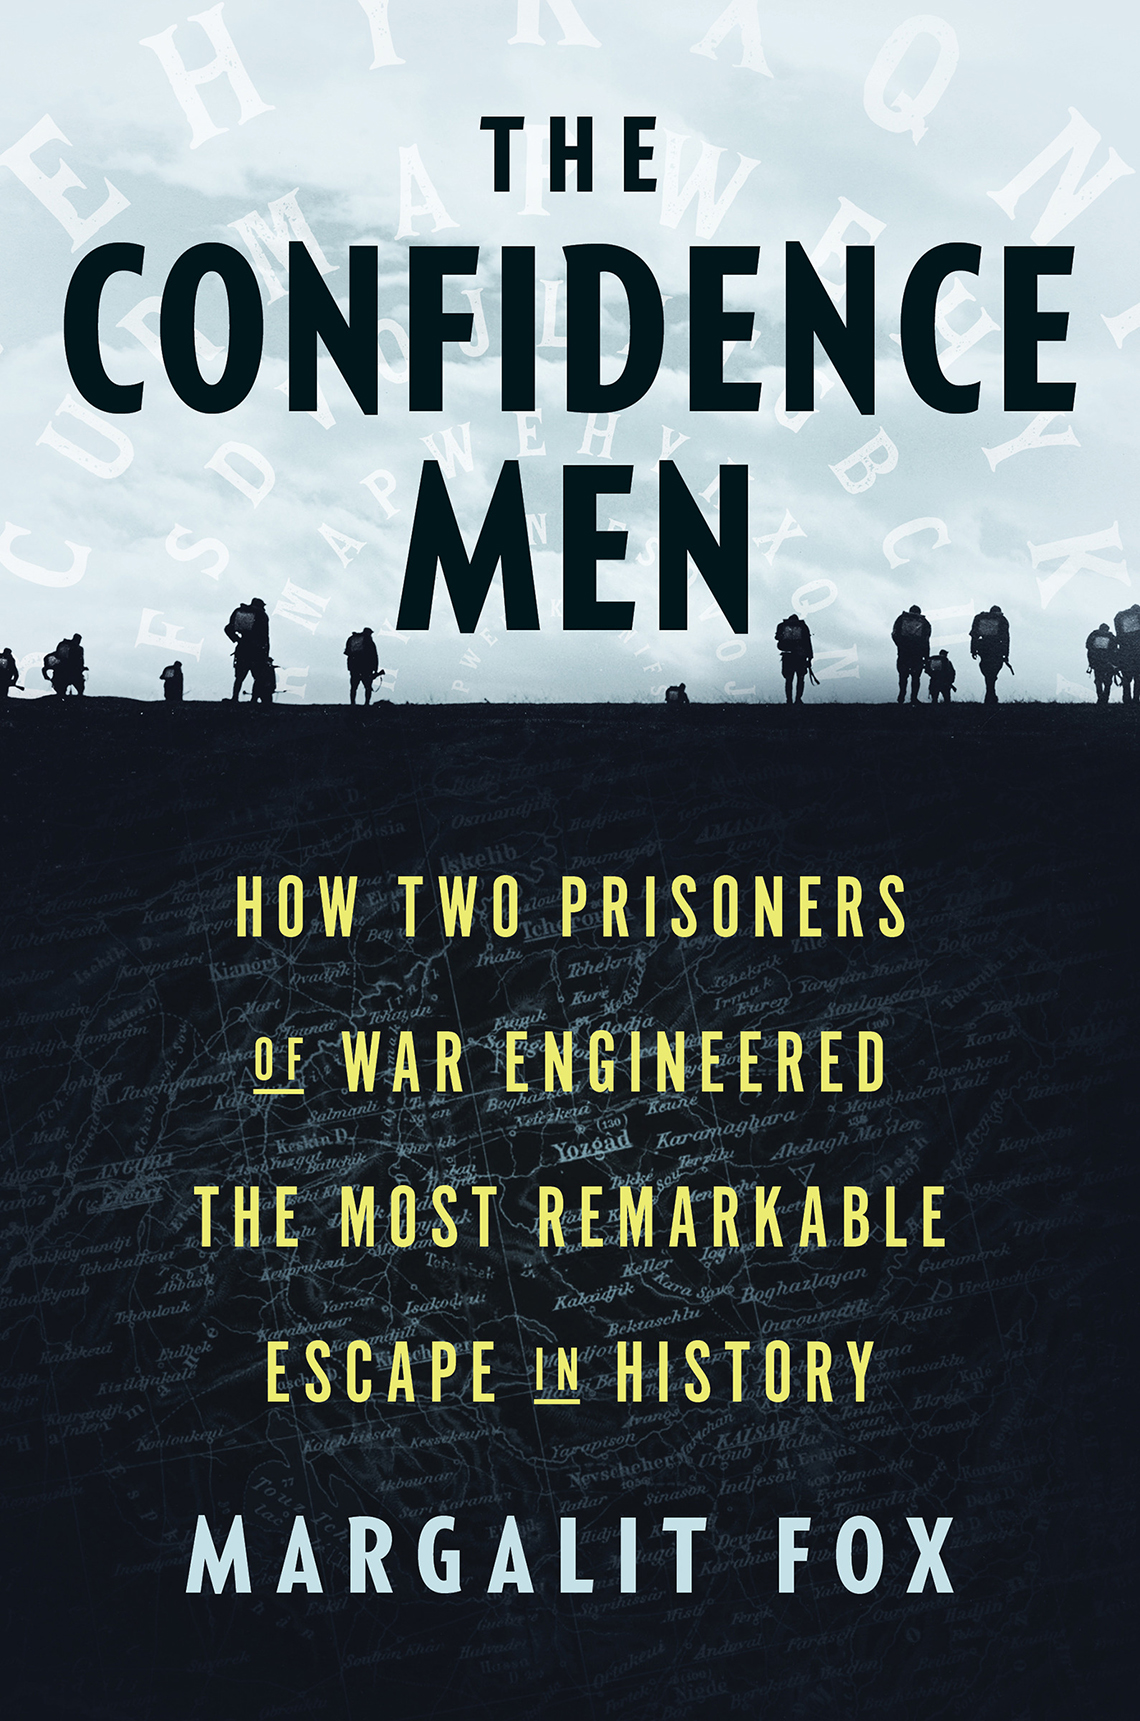 the confidence men how two prisoners of war engineered the most remarkable escape in history by margalit fox